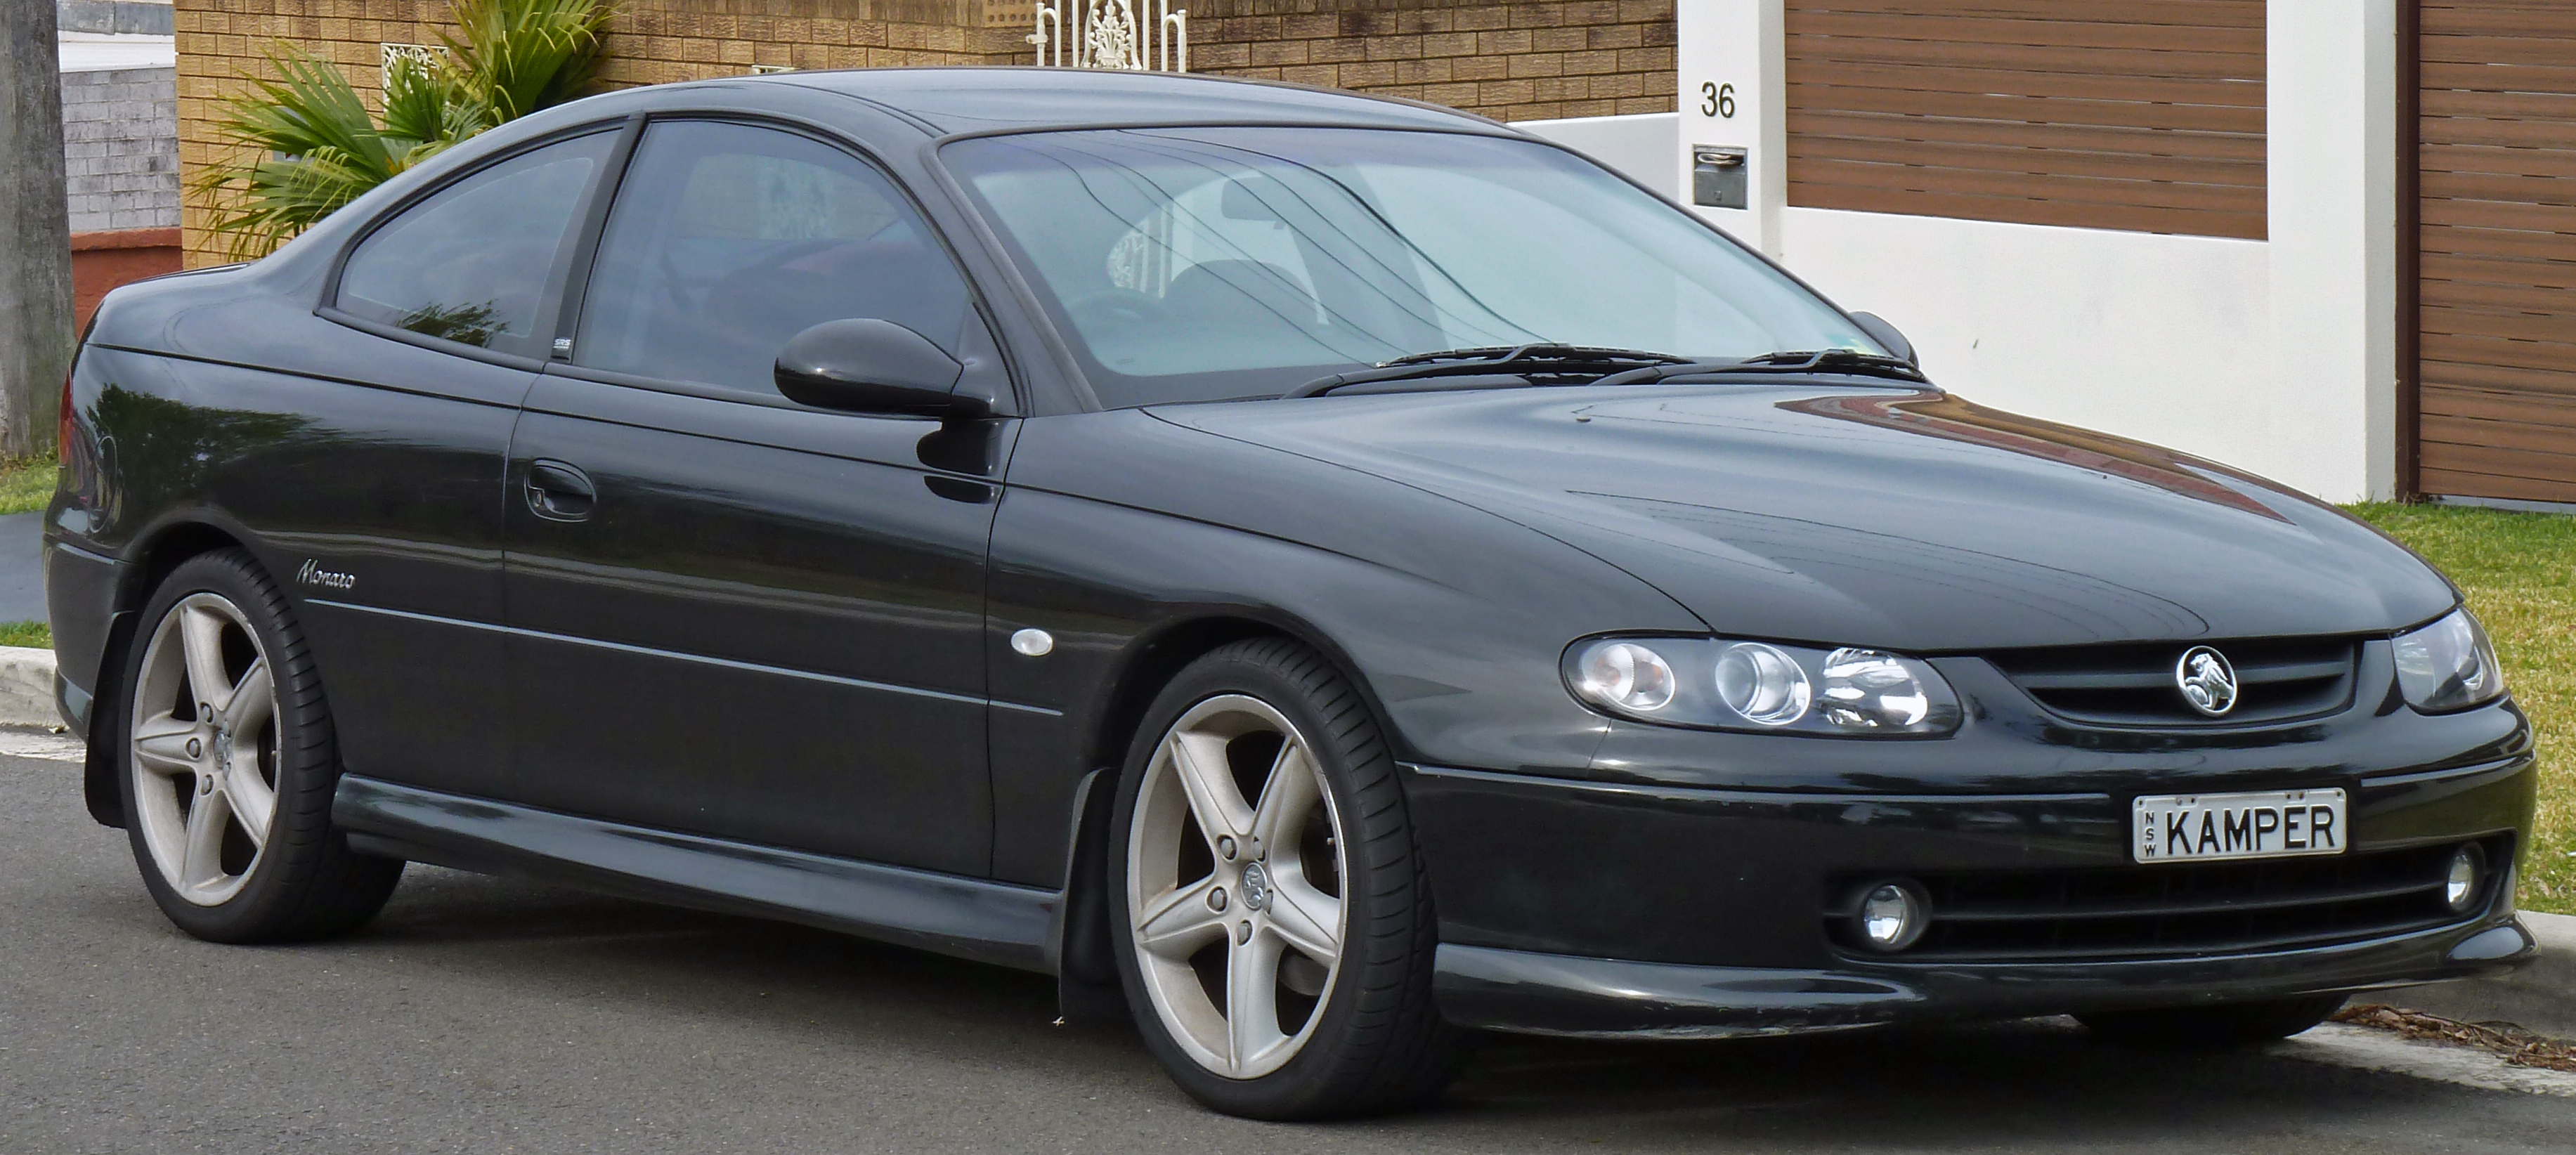 holden monaro pictures